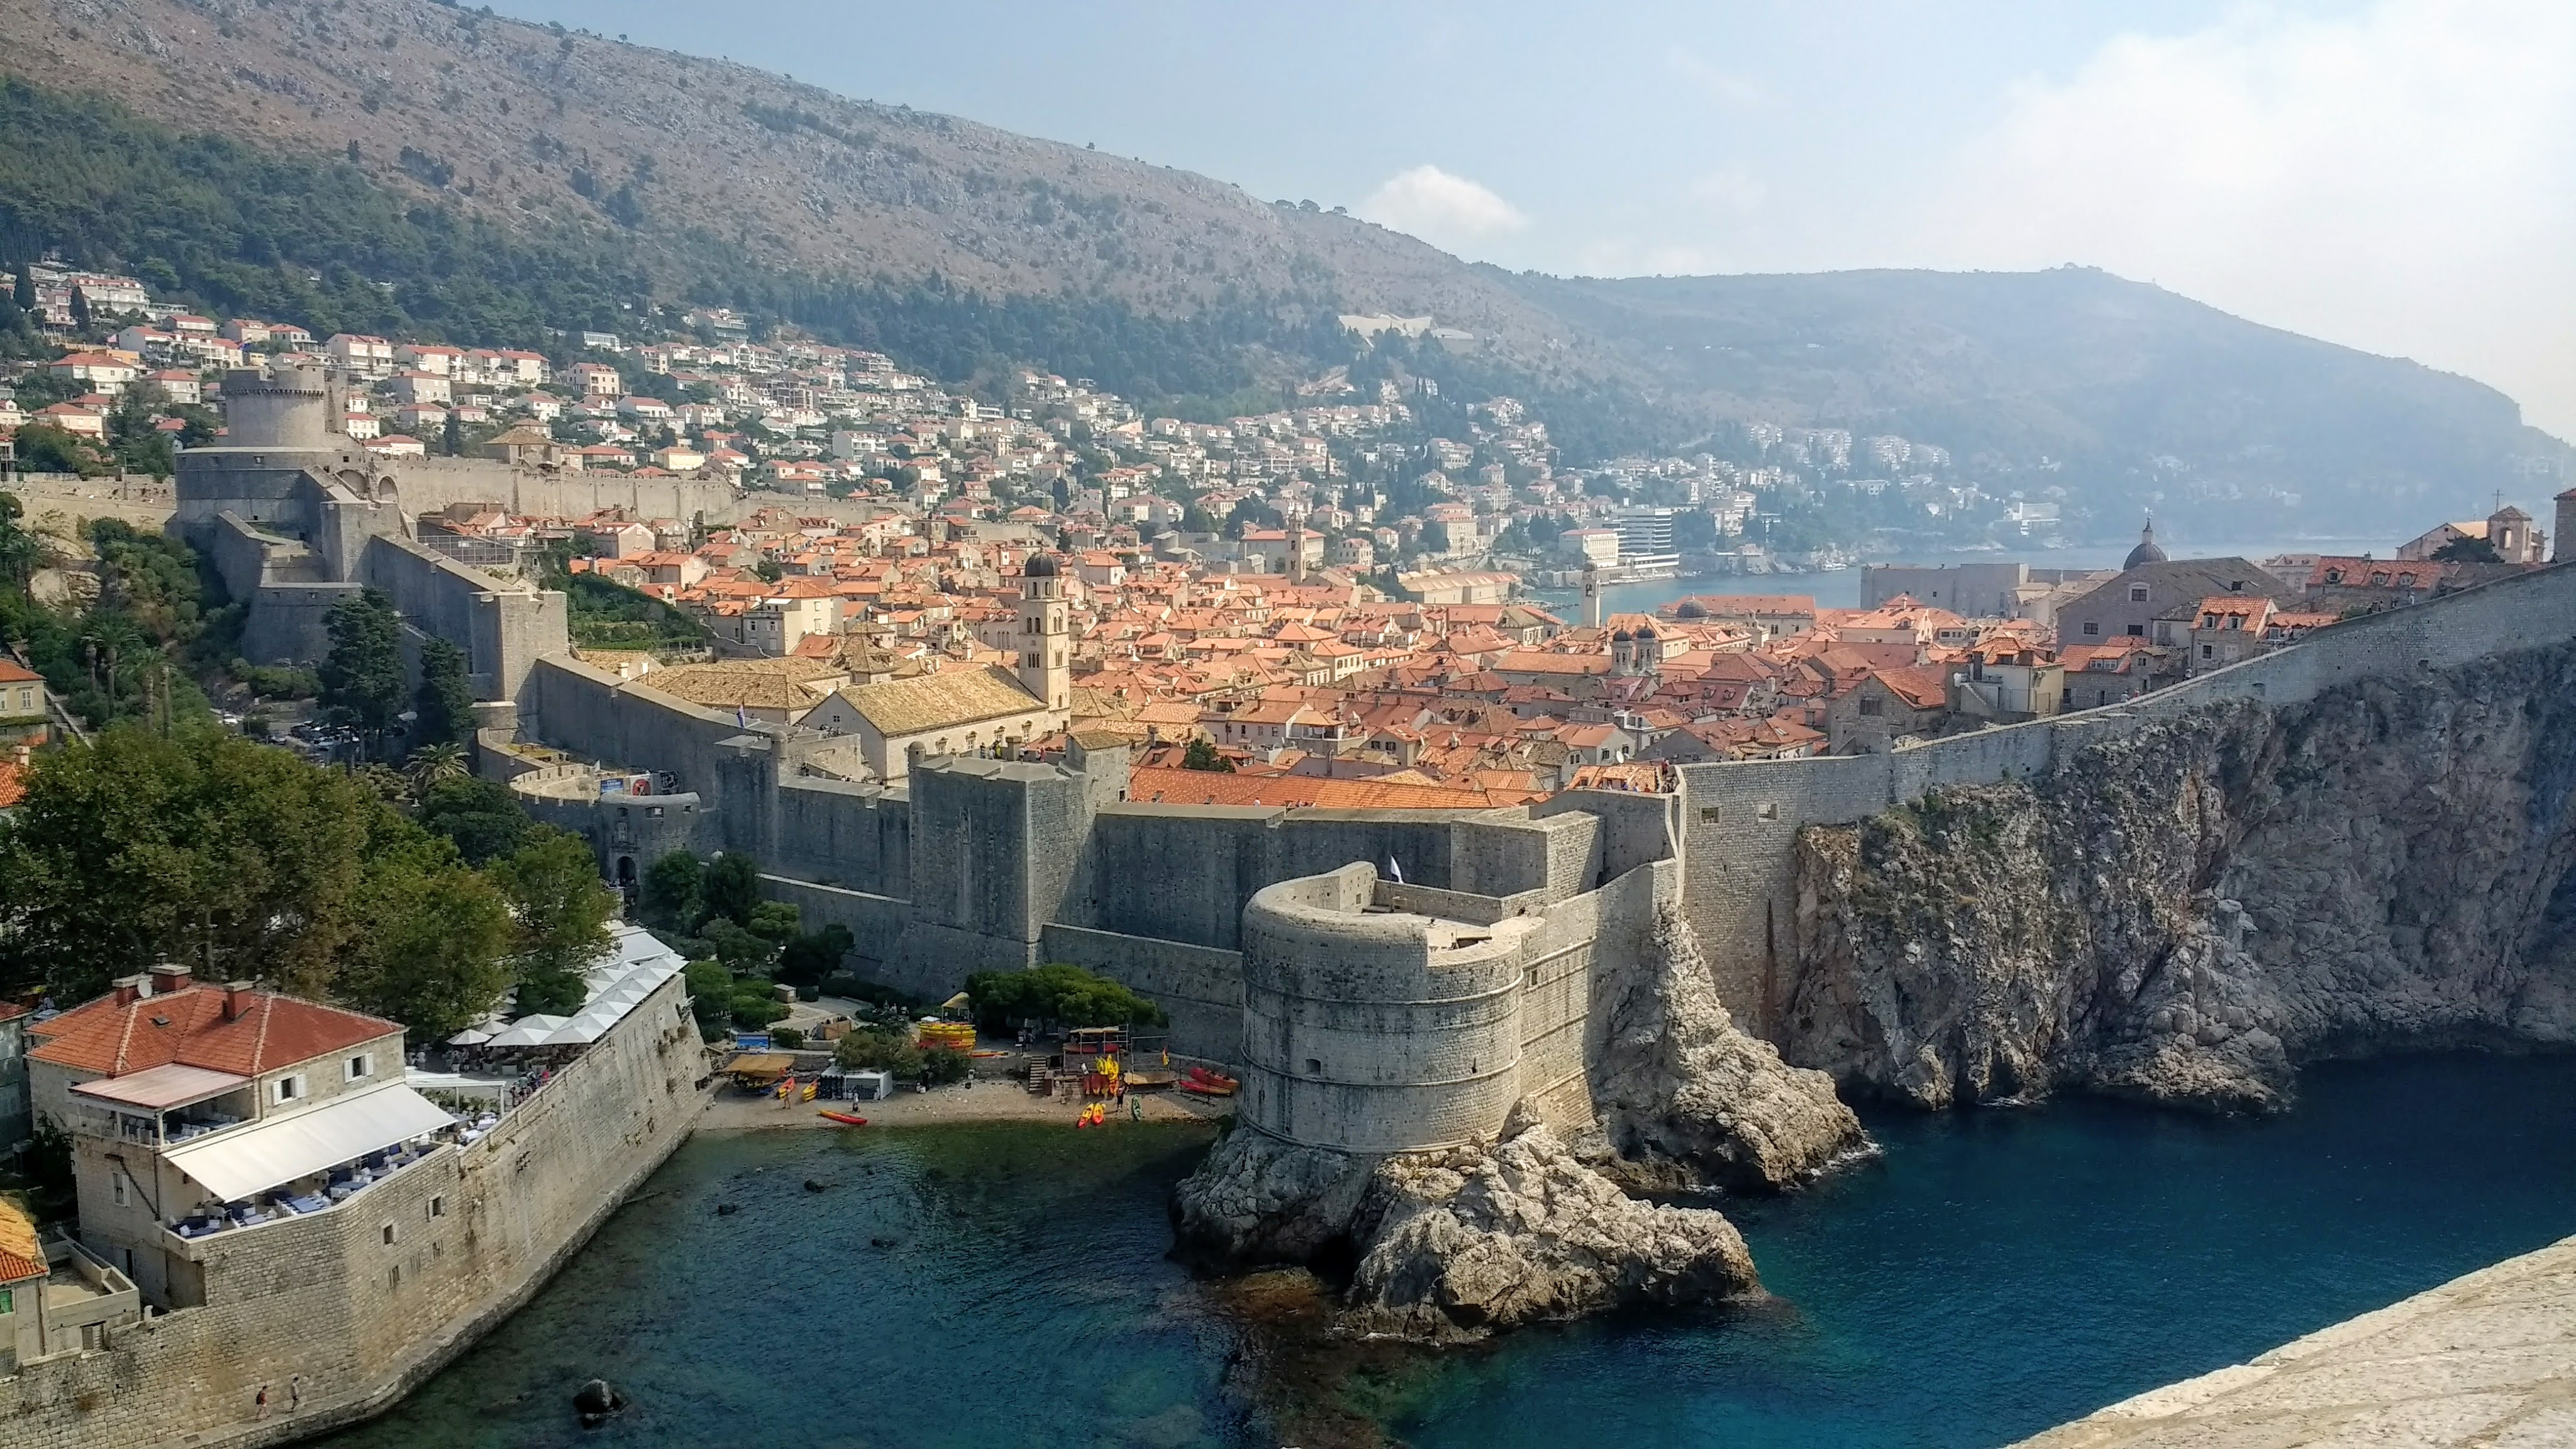 A shot of Dubrovnik taken from the castle, featuring the Old Town walls.